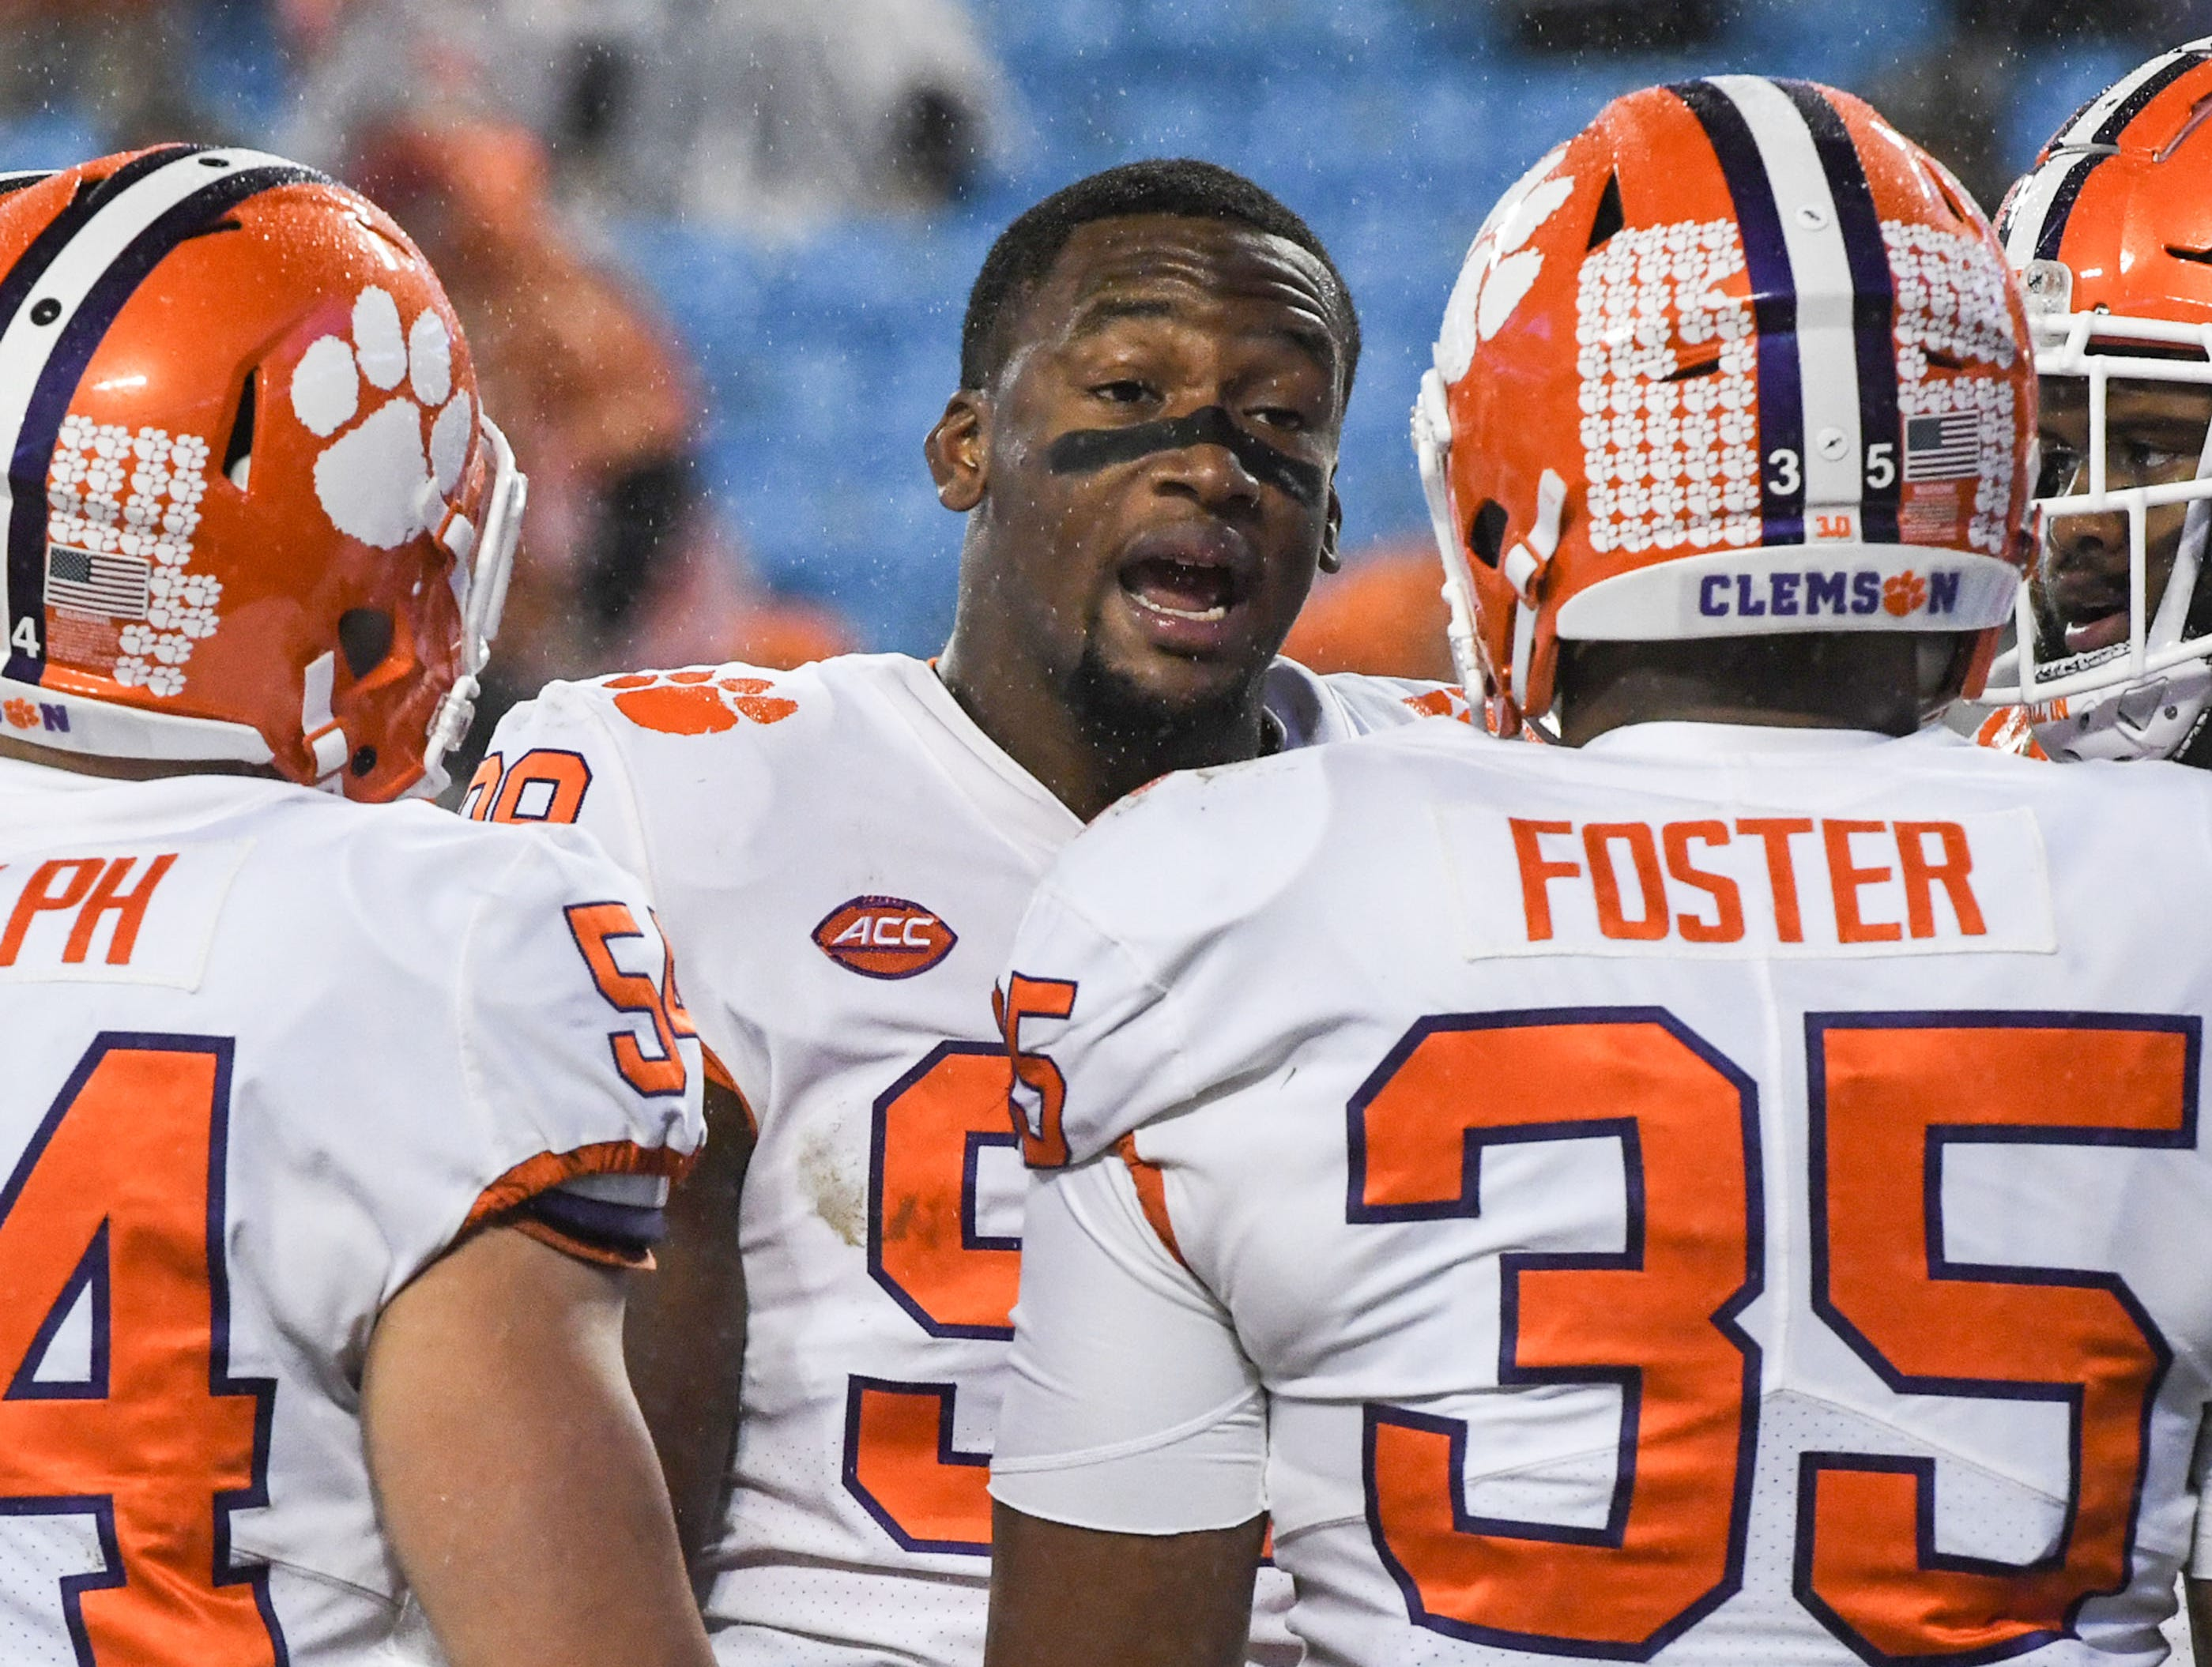 Clemson defensive lineman Clelin Ferrell (99) talks with teammates before the game of the Dr. Pepper ACC football championship at Bank of America Stadium in Charlotte, N.C. on Saturday, December 1, 2018.